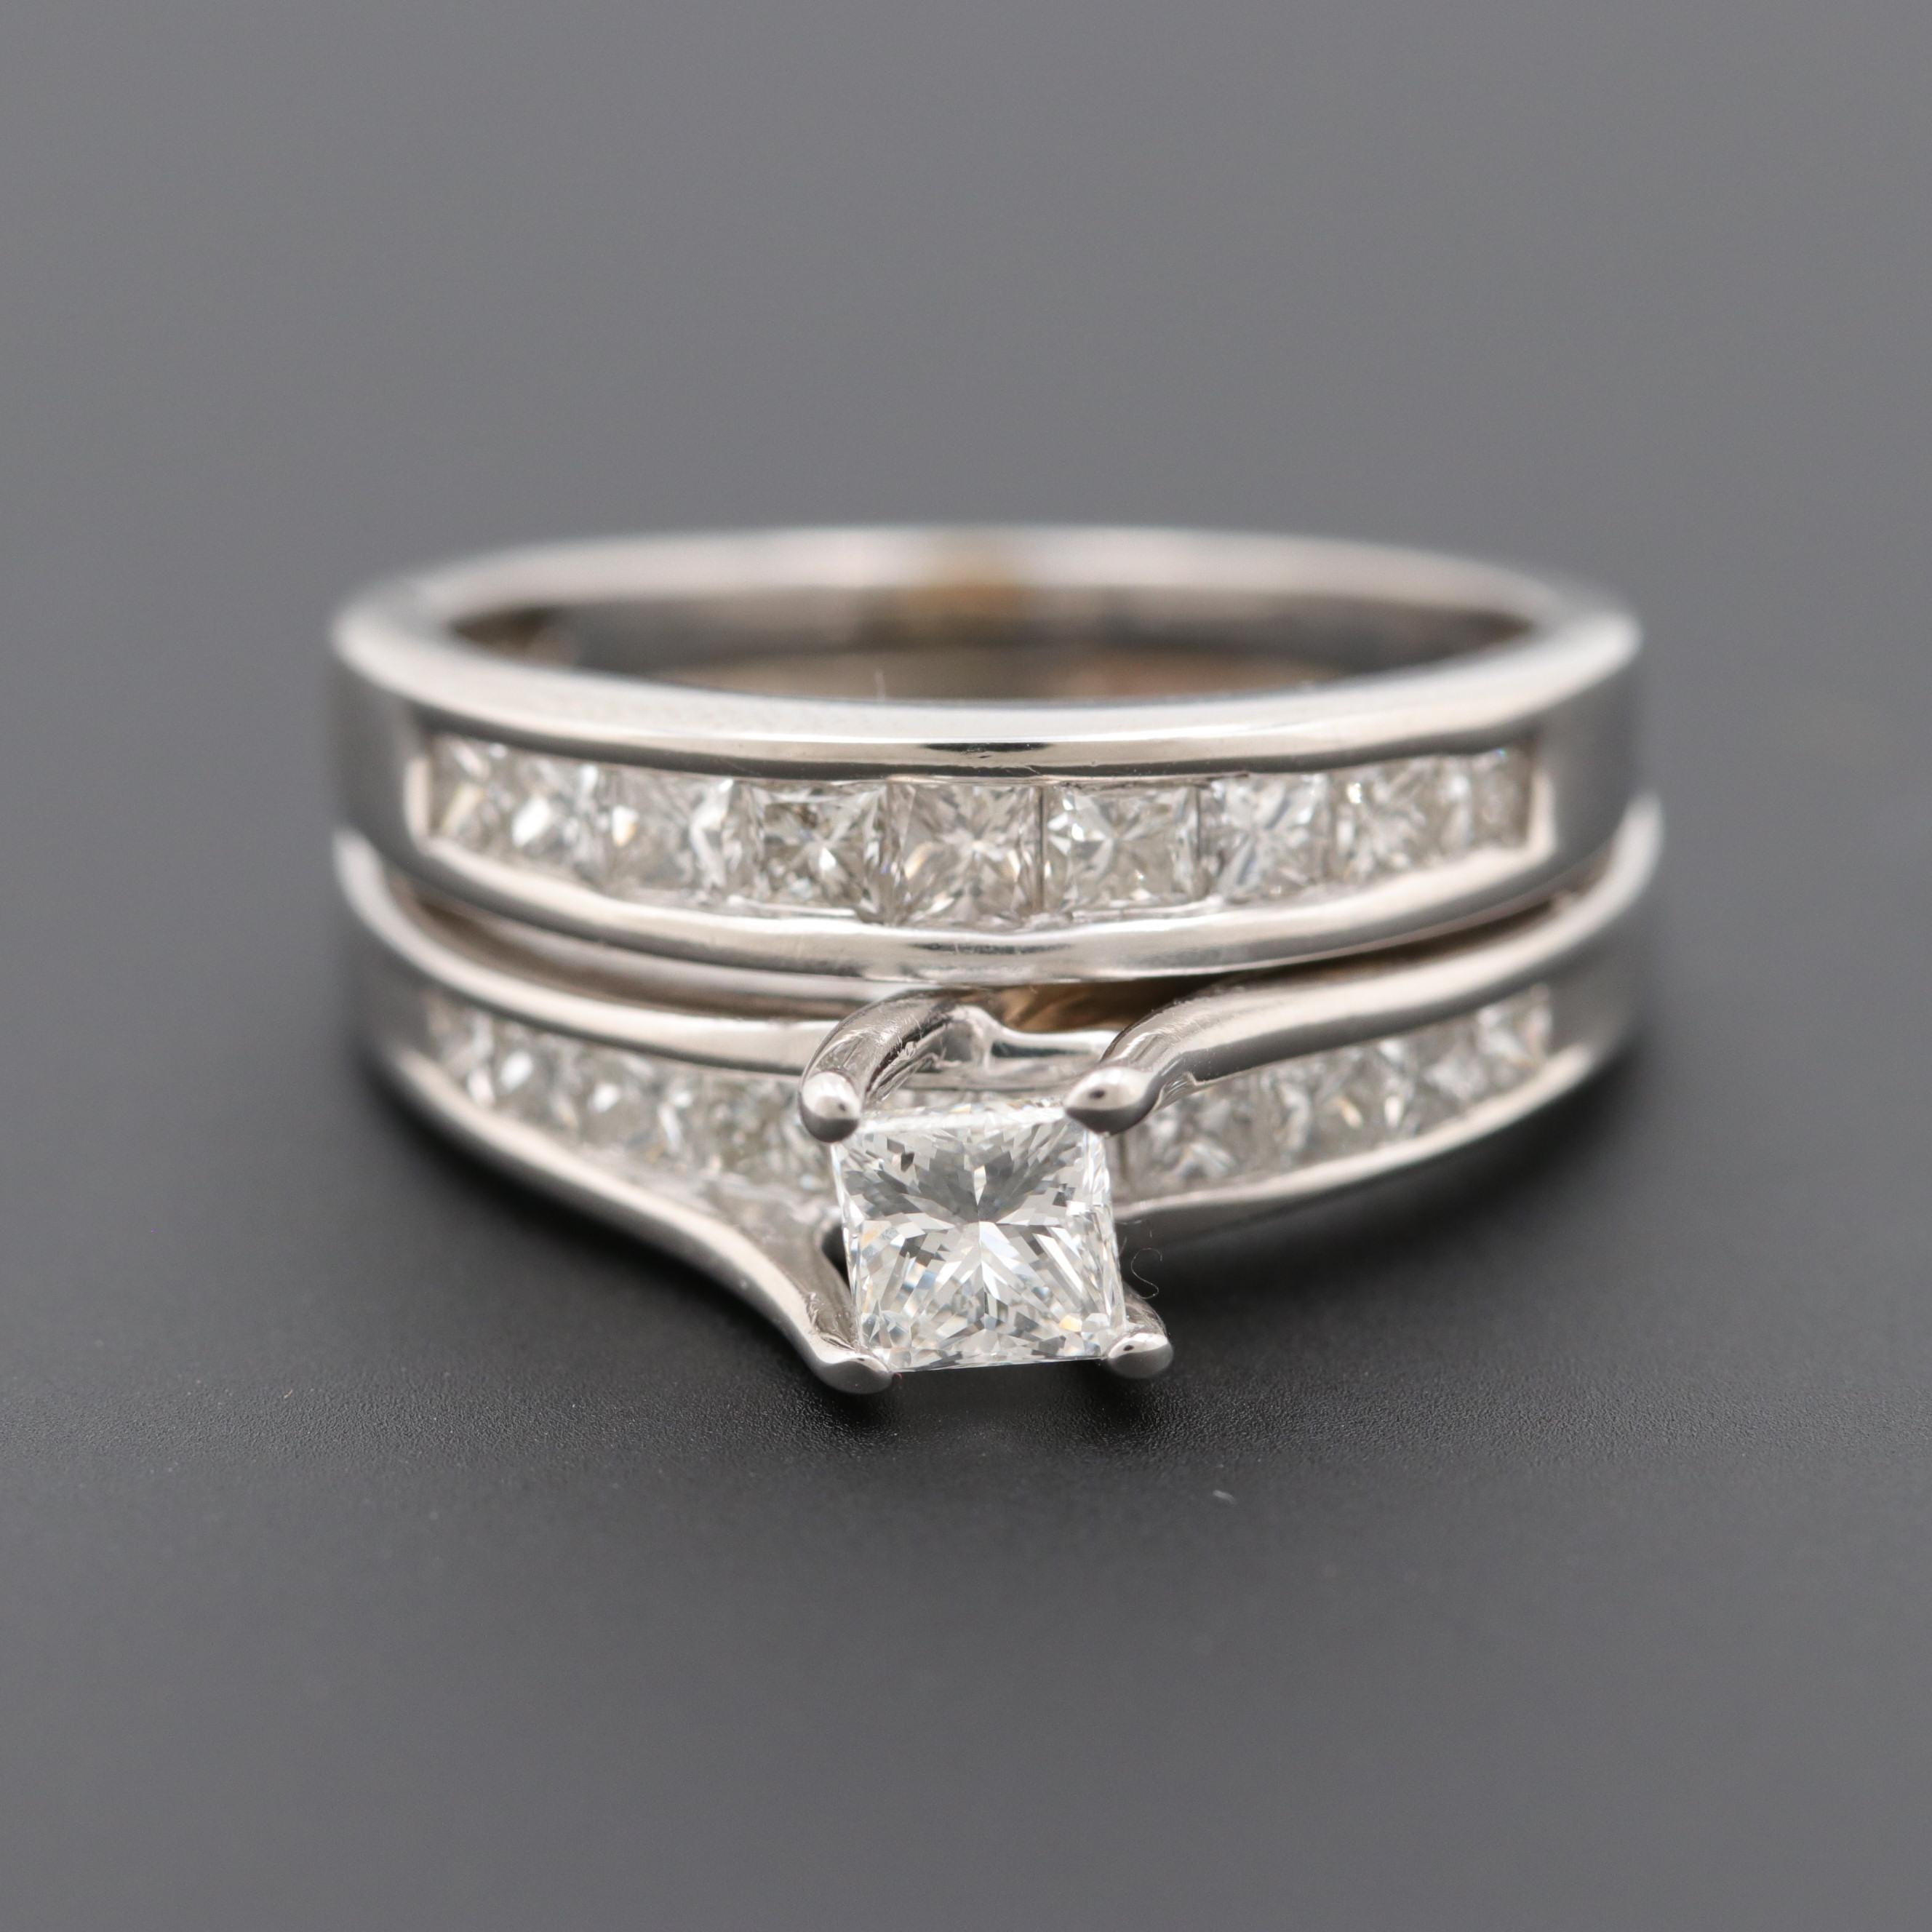 14K White Gold 1.38 CTW Diamond Soldered Ring Set